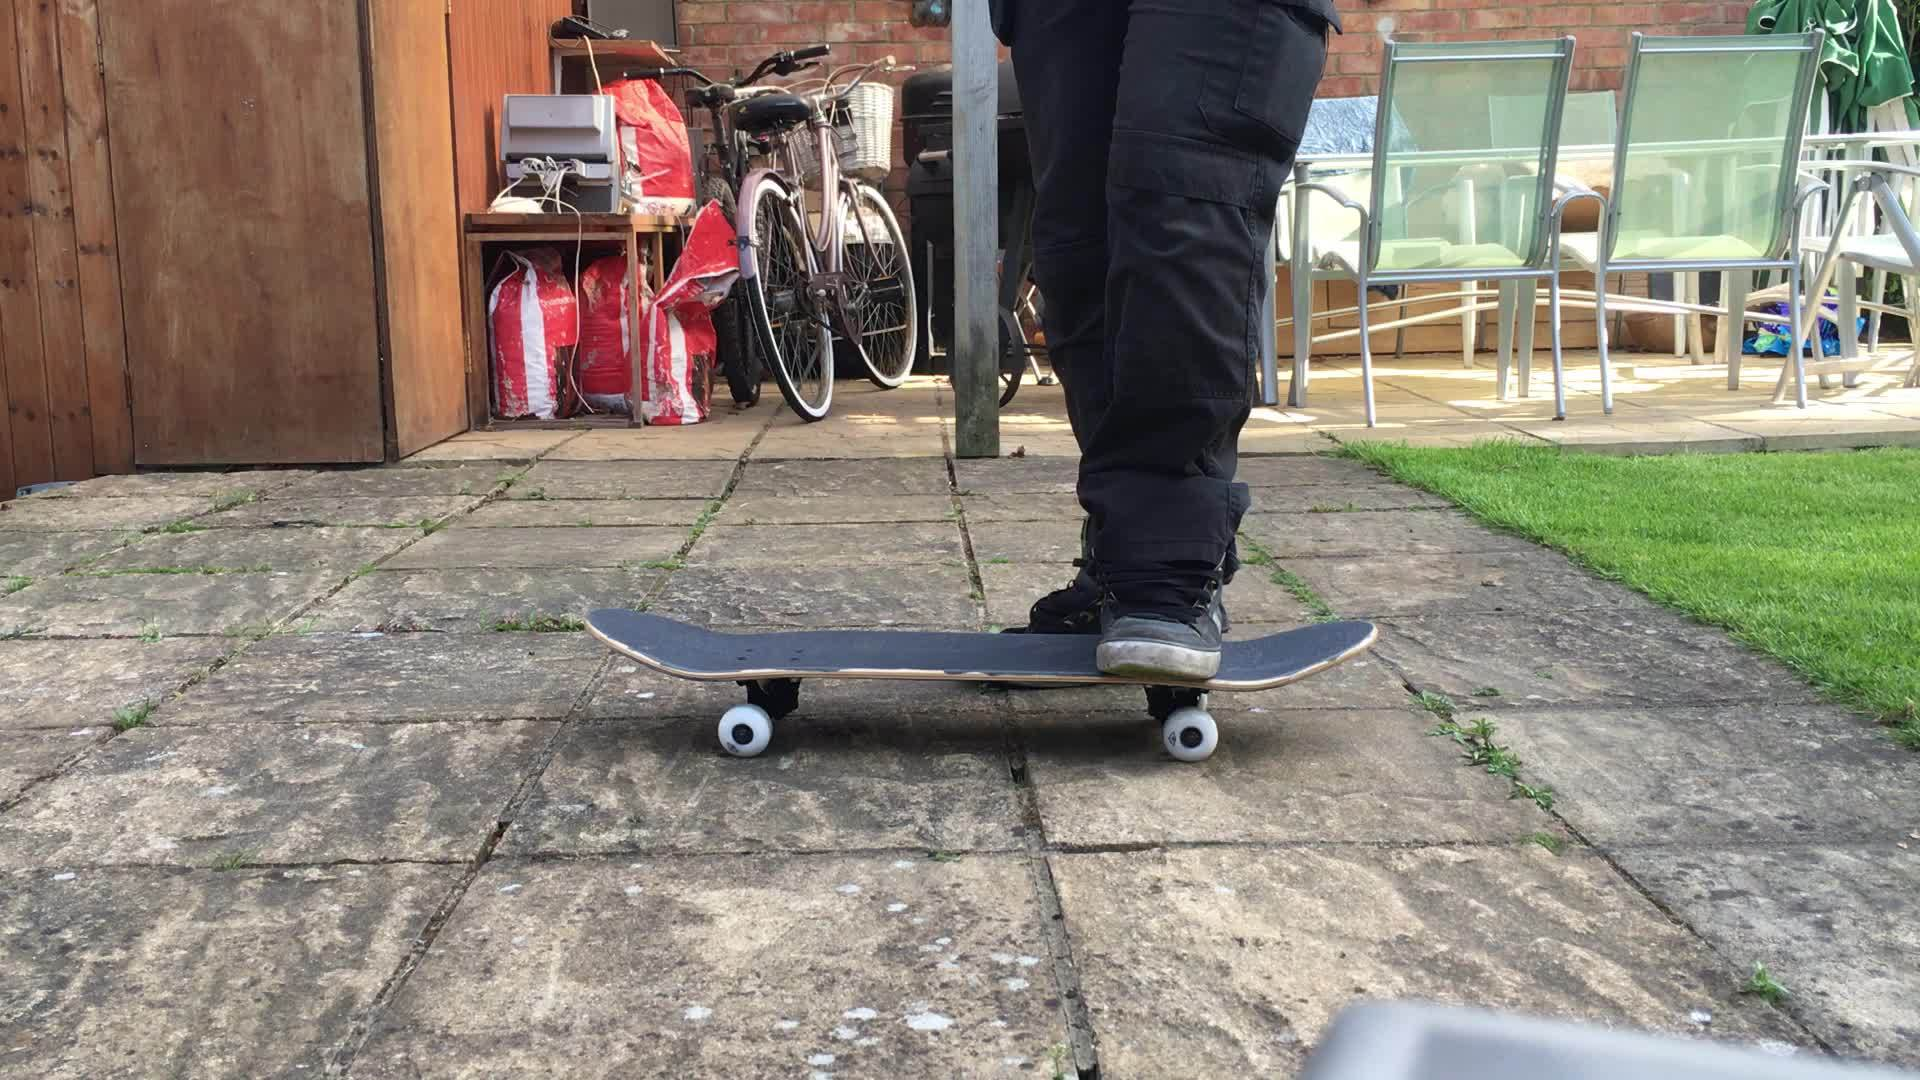 newskaters, First and second shove it GIFs